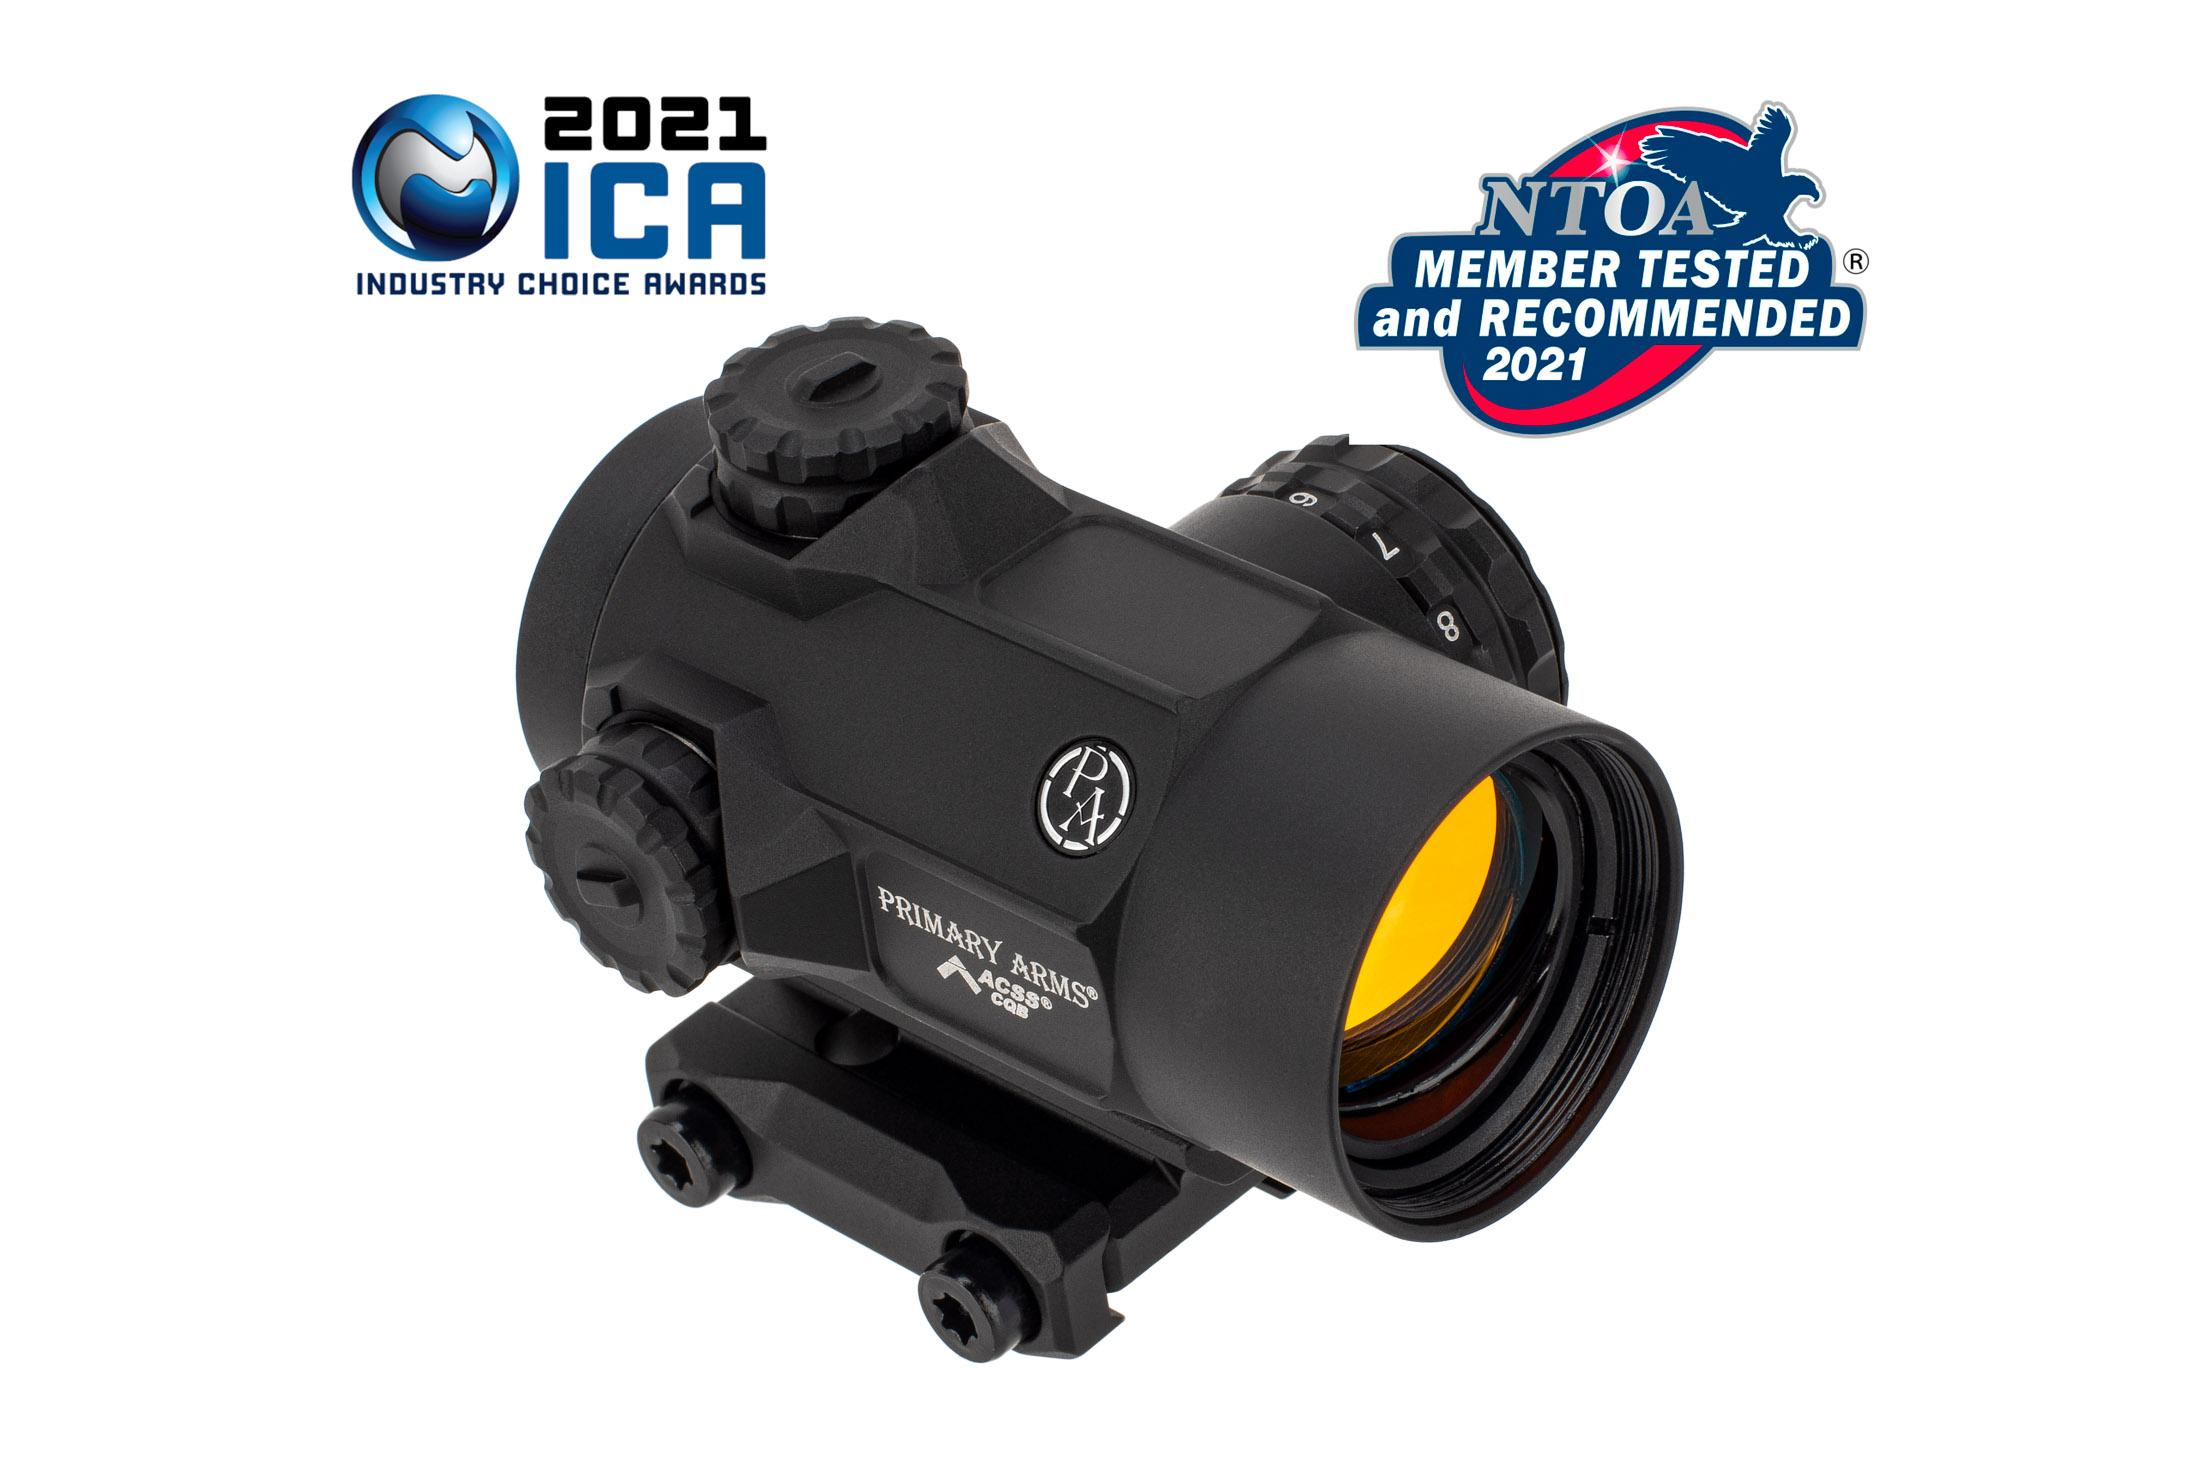 MD25 ACSS – Industry Choice Award Red Dot of the Year